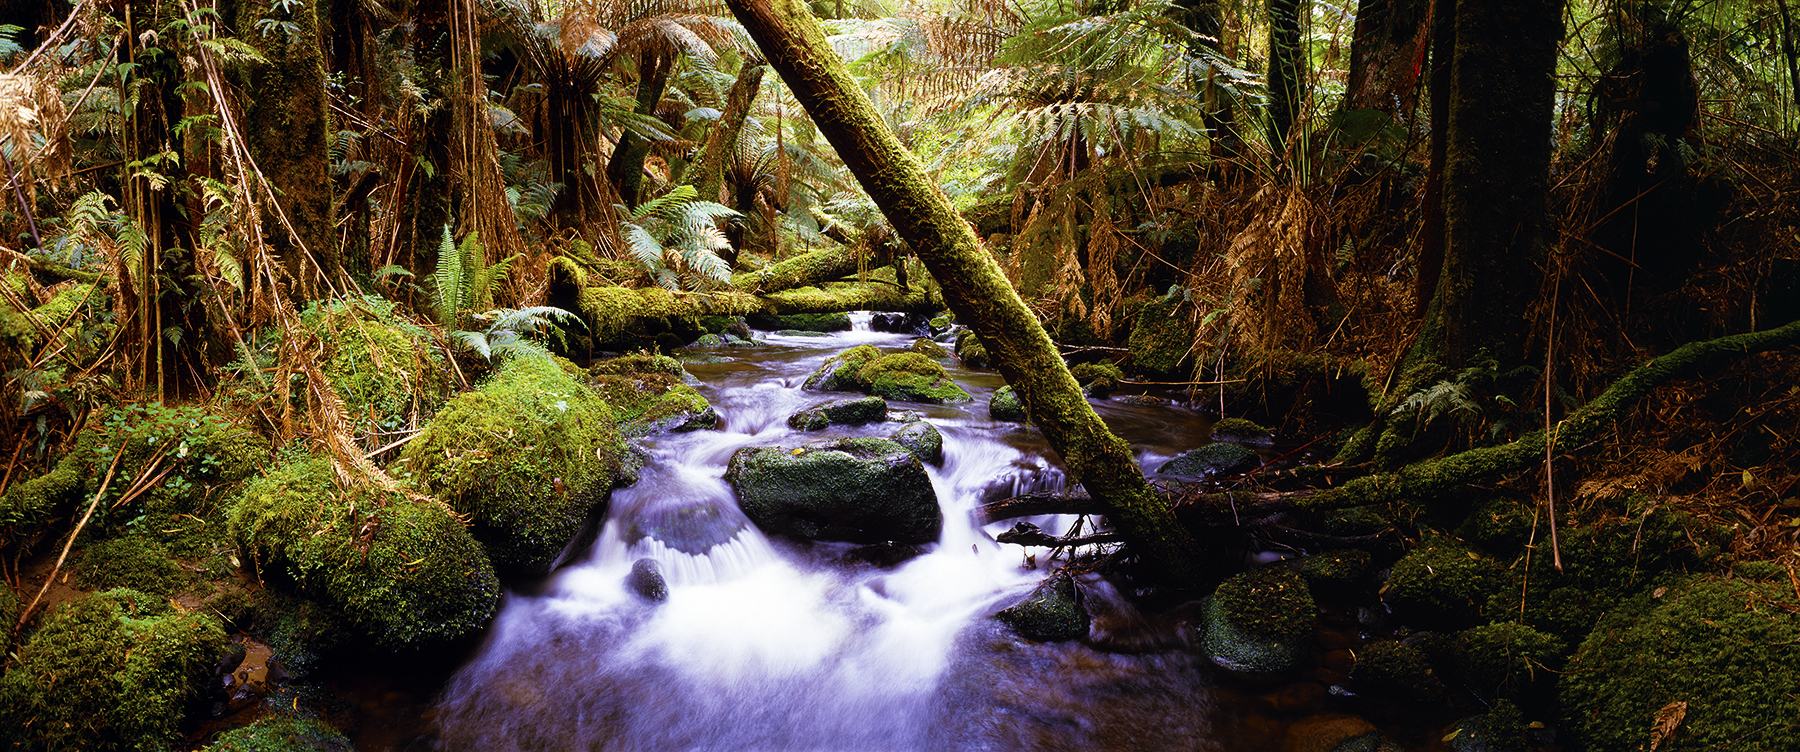 Forest Treasure, Victoria, Australia. A Limited Edition Fine Art Landscape Photograph by Richard Hume